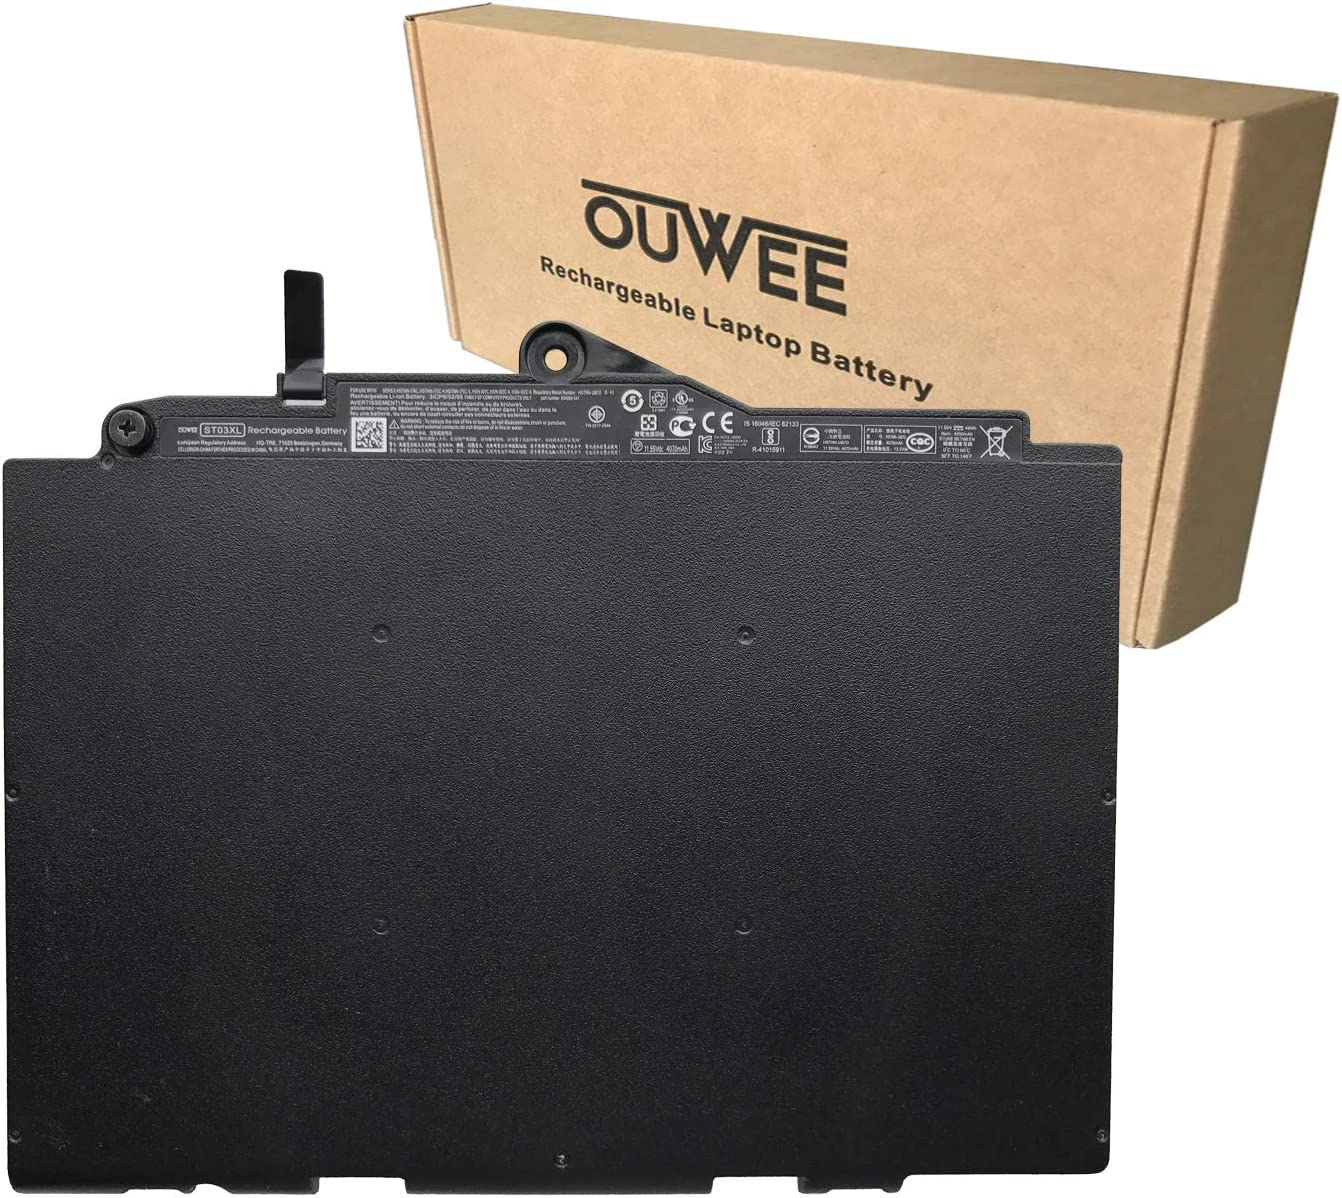 OUWEE ST03XL Laptop Battery Compatible with HP EliteBook 820 725 G3 G4 828 G4 Series HSTNN-UB7D 854050-541 854109-850 HSN-I01C HSN-I02C-4 SN03XL HSTNN-I74C HSTNN-I75C-4 11.55V 49Wh 4250mAh